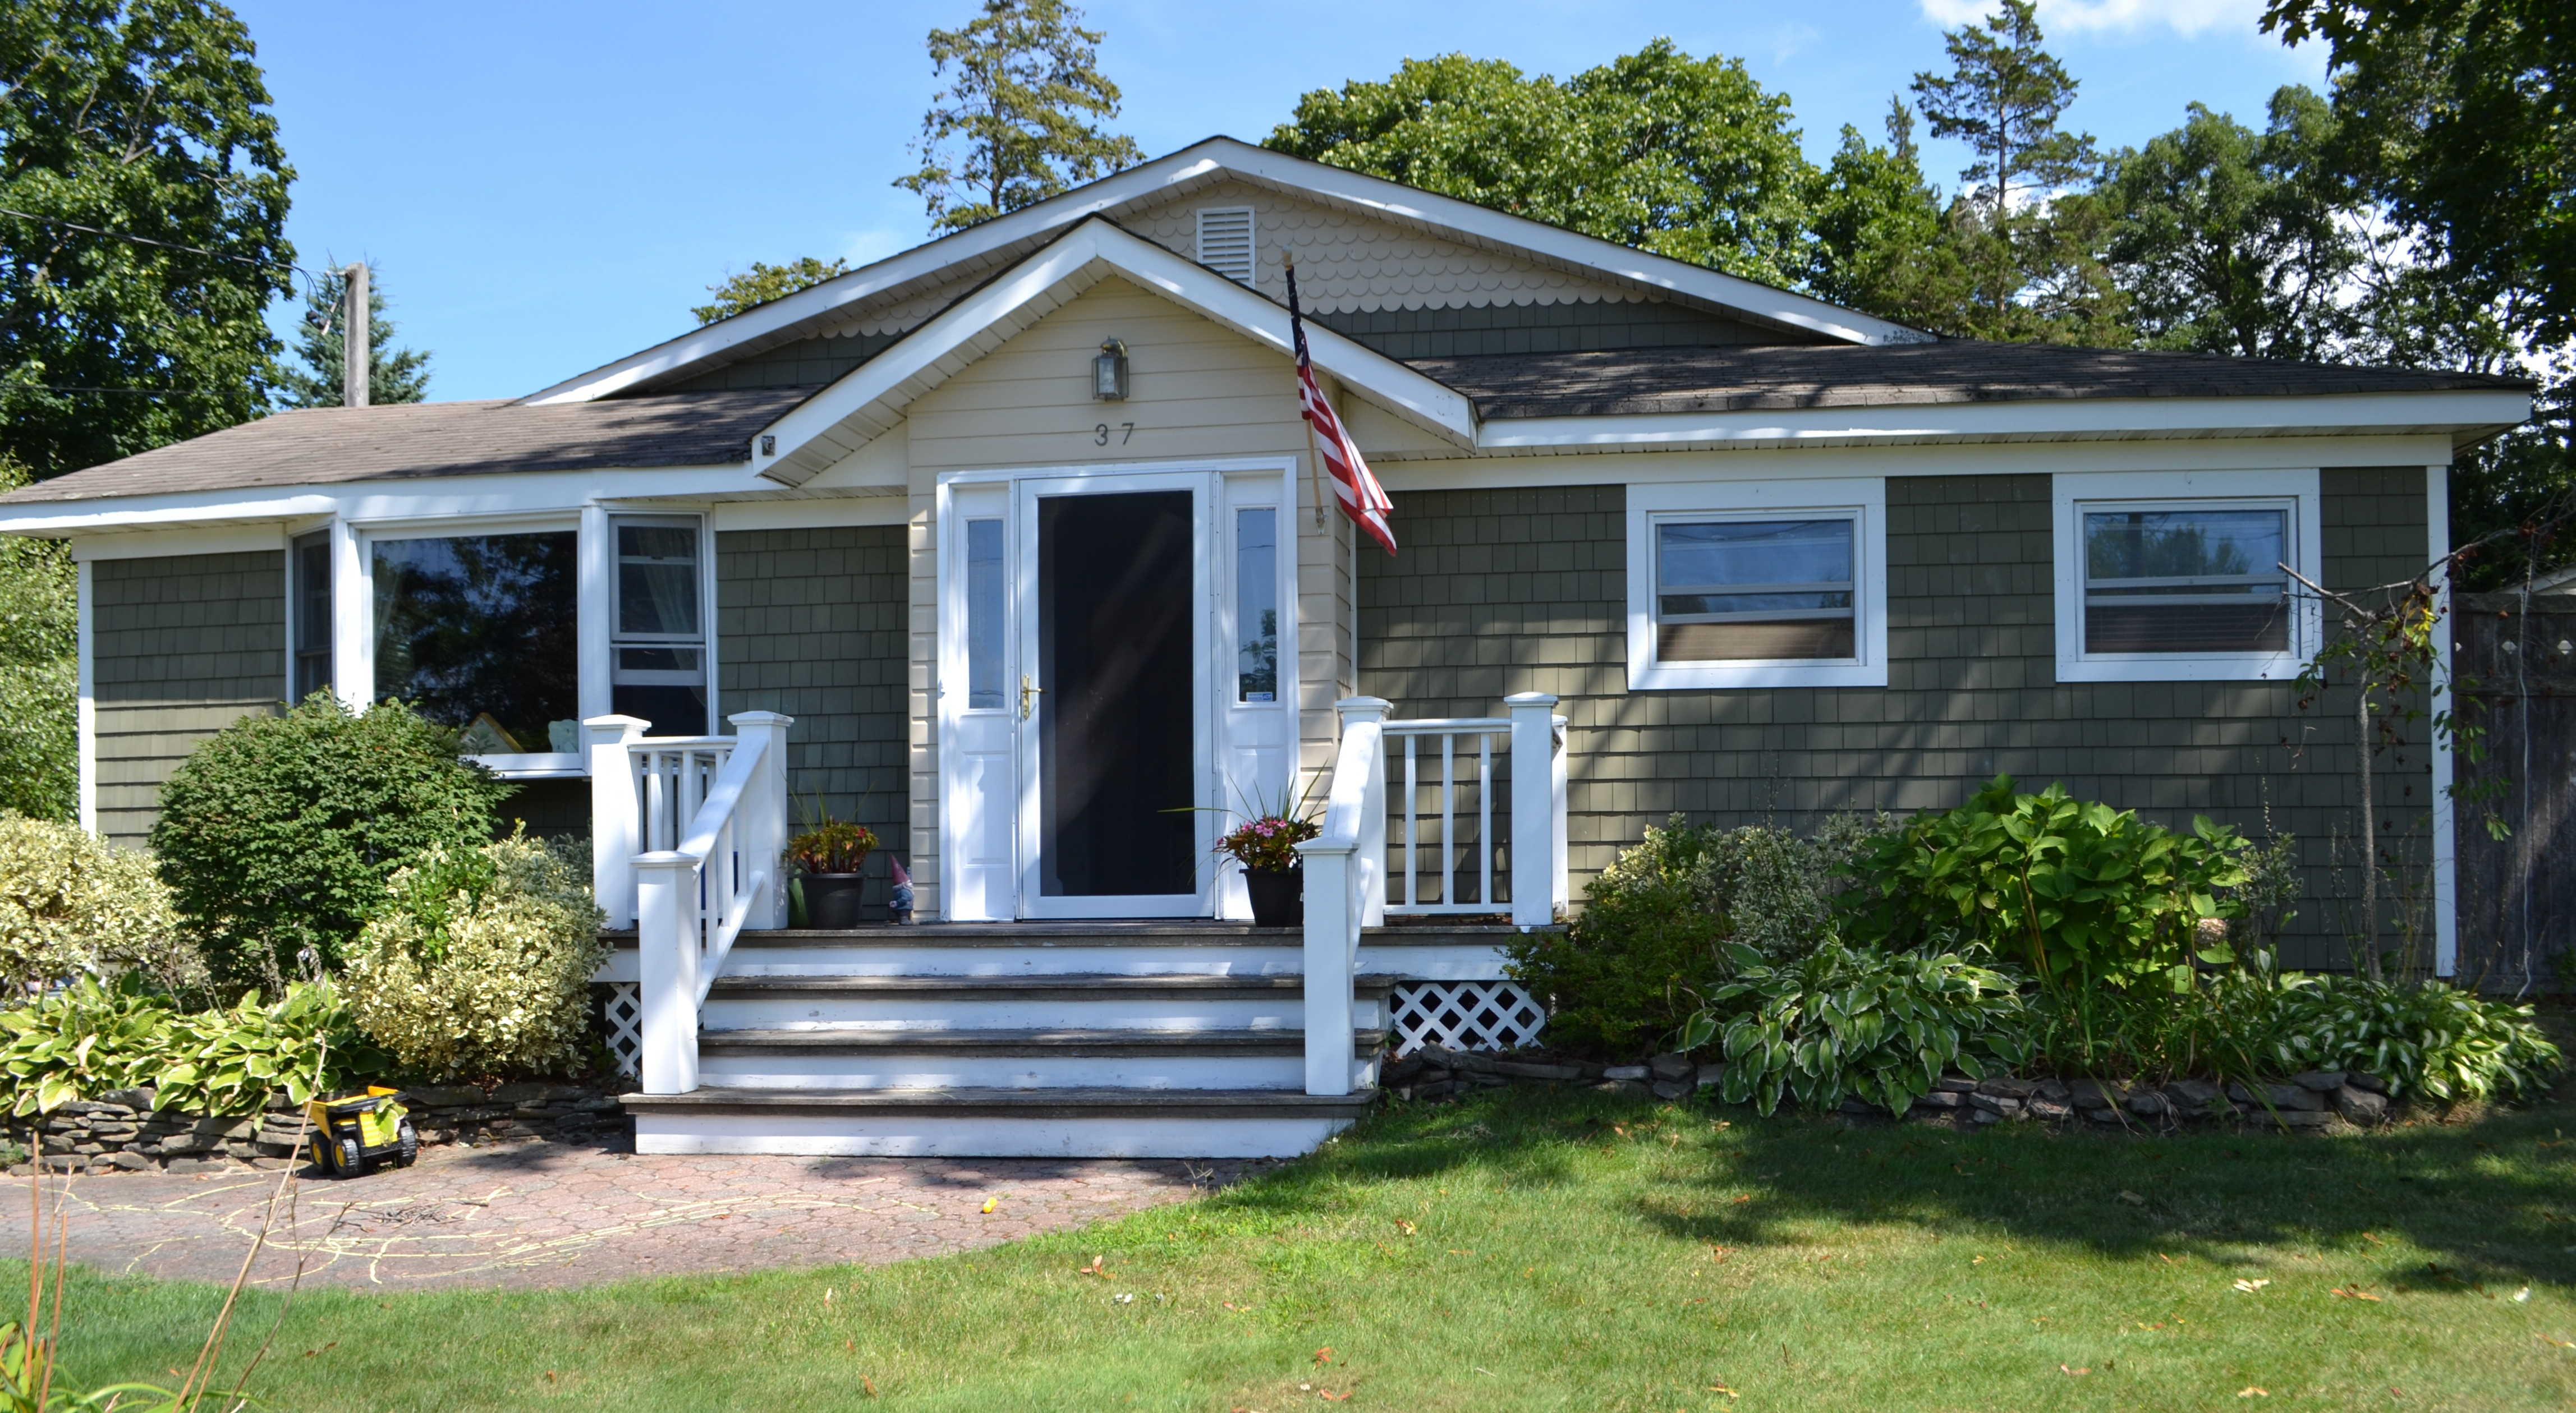 Single Family Home for Sale at Ranch 37 Beech Rd Rocky Point, New York 11778 United States